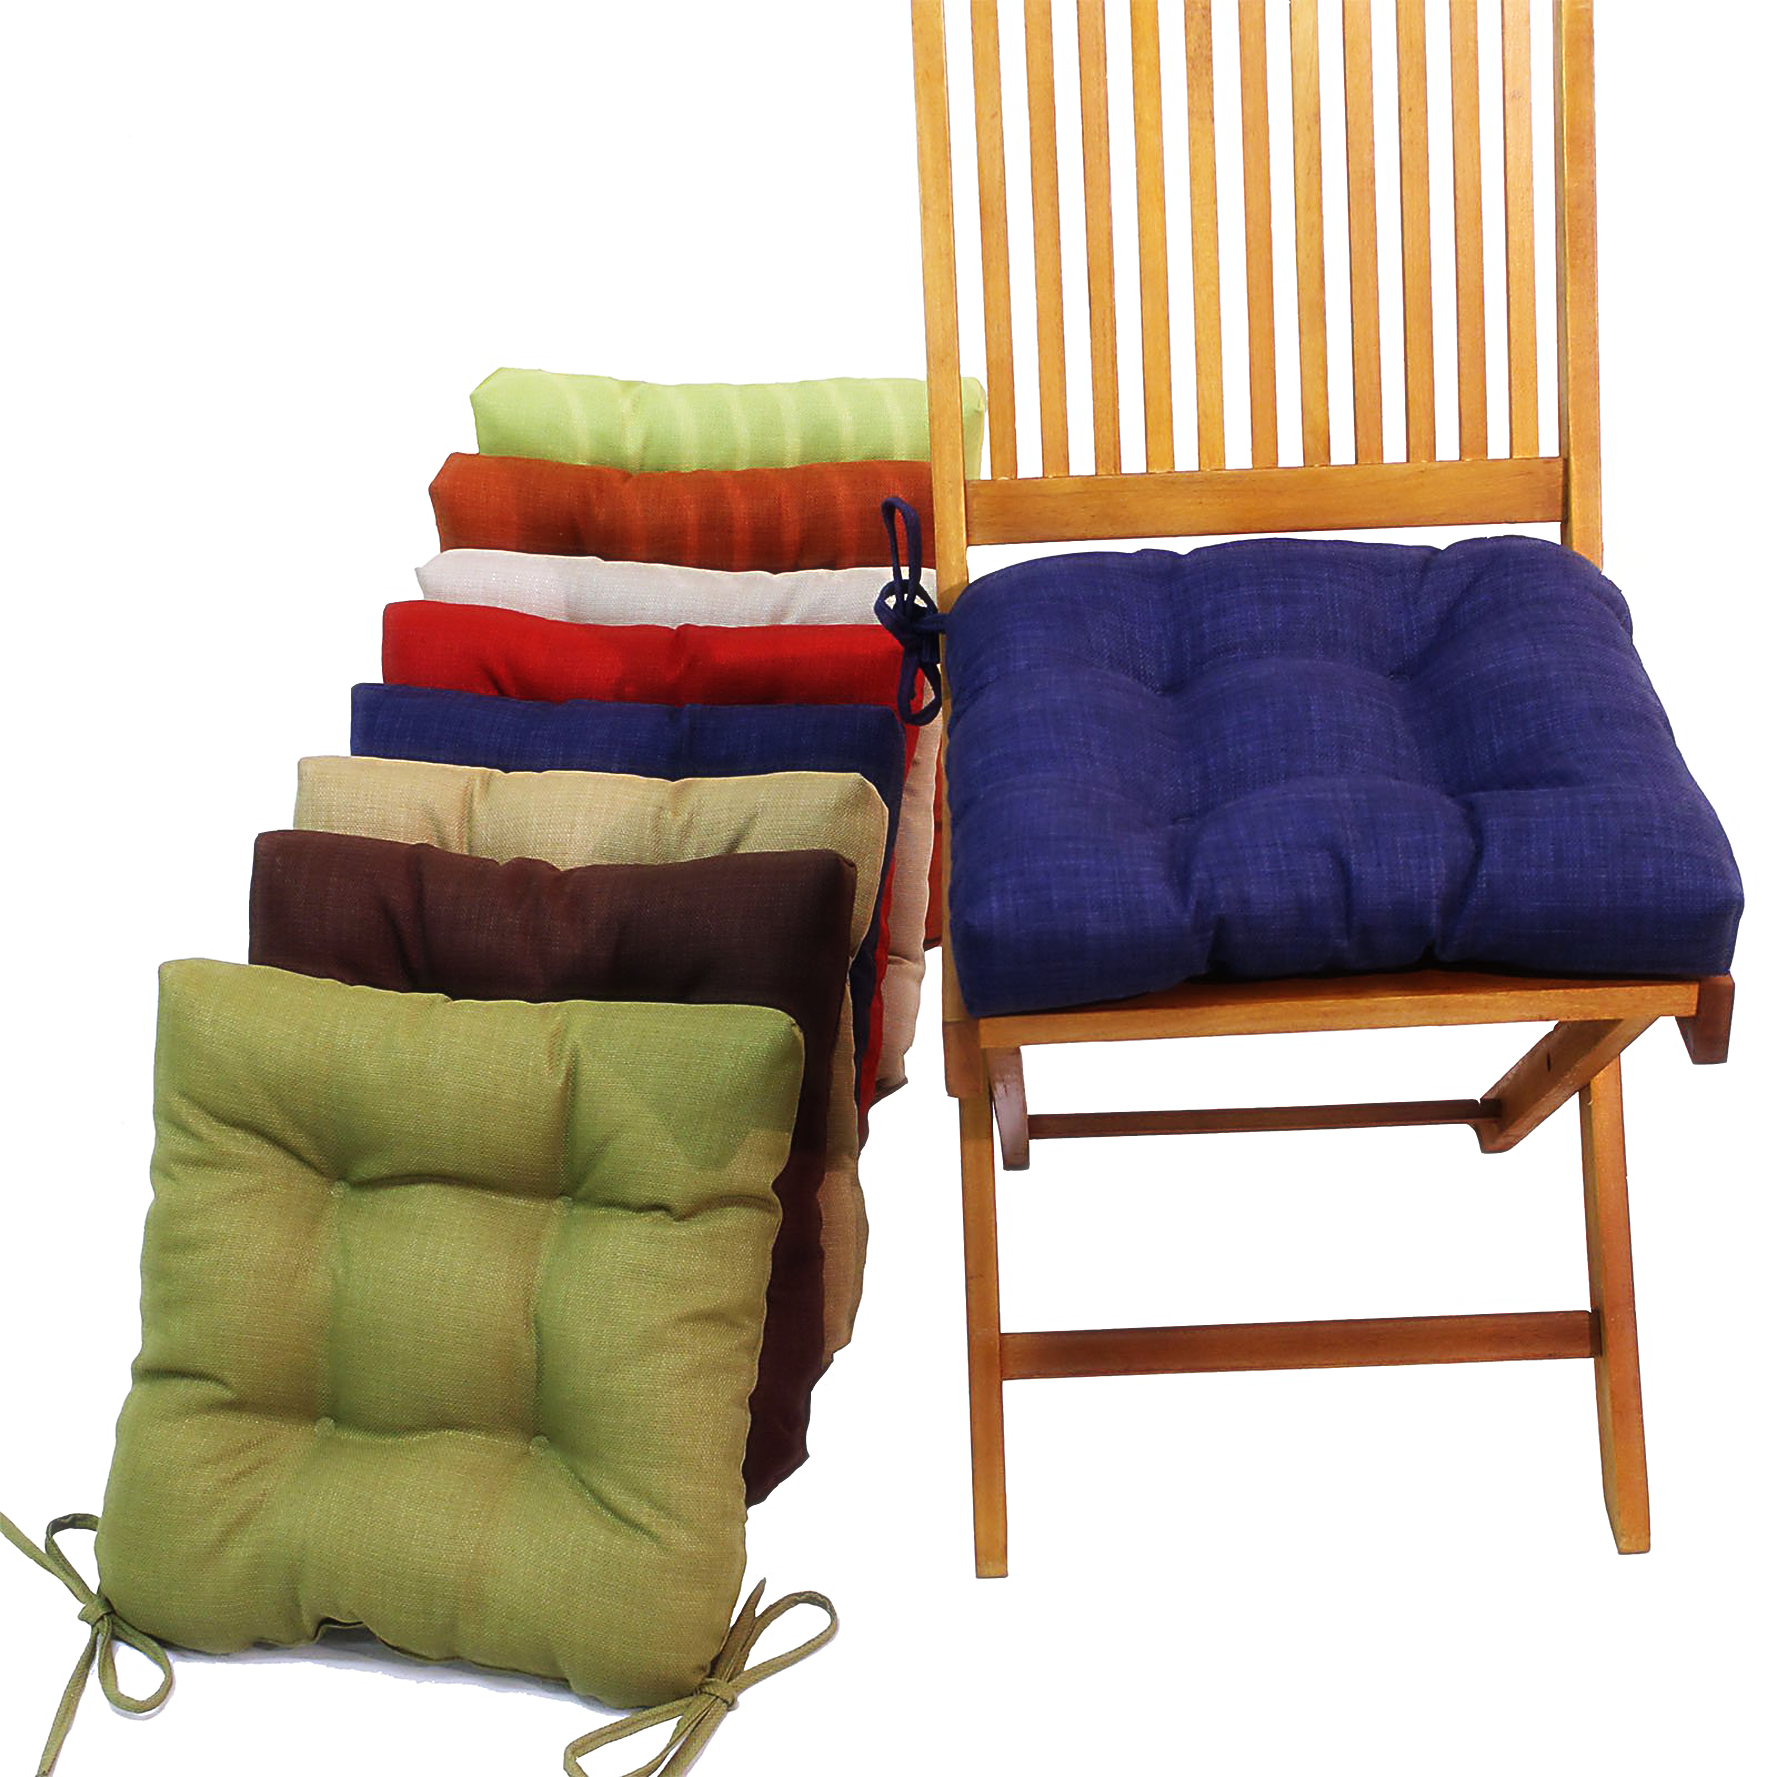 Kitchen chair cushions with ties homesfeed for Kitchen chairs